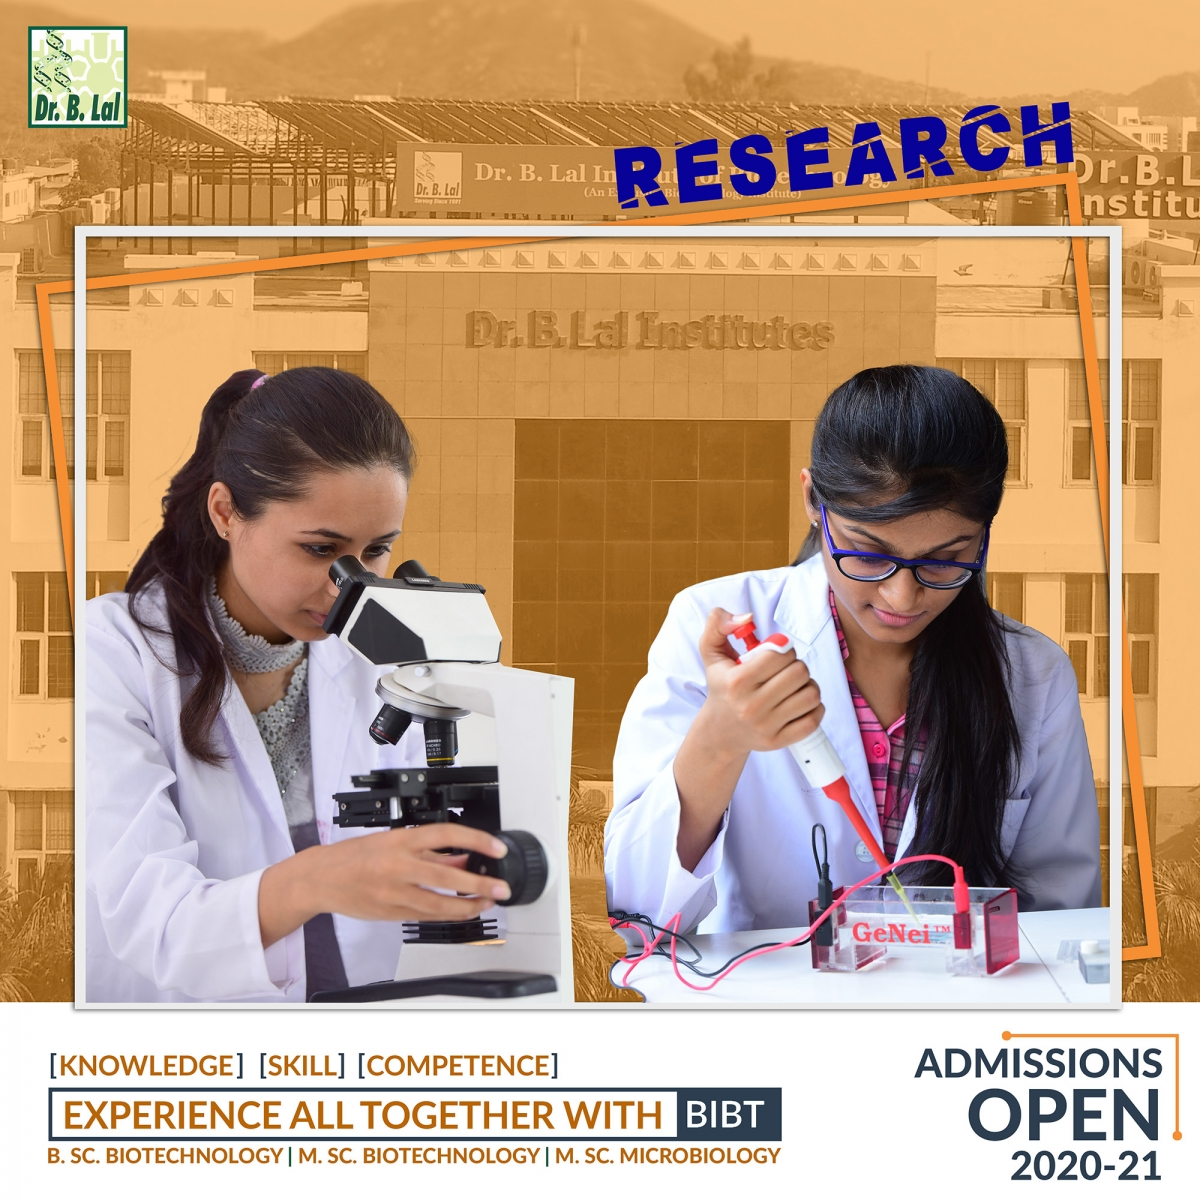 Admission Open 2020-21 | Dr. B. Lal Institute of Biotechnology